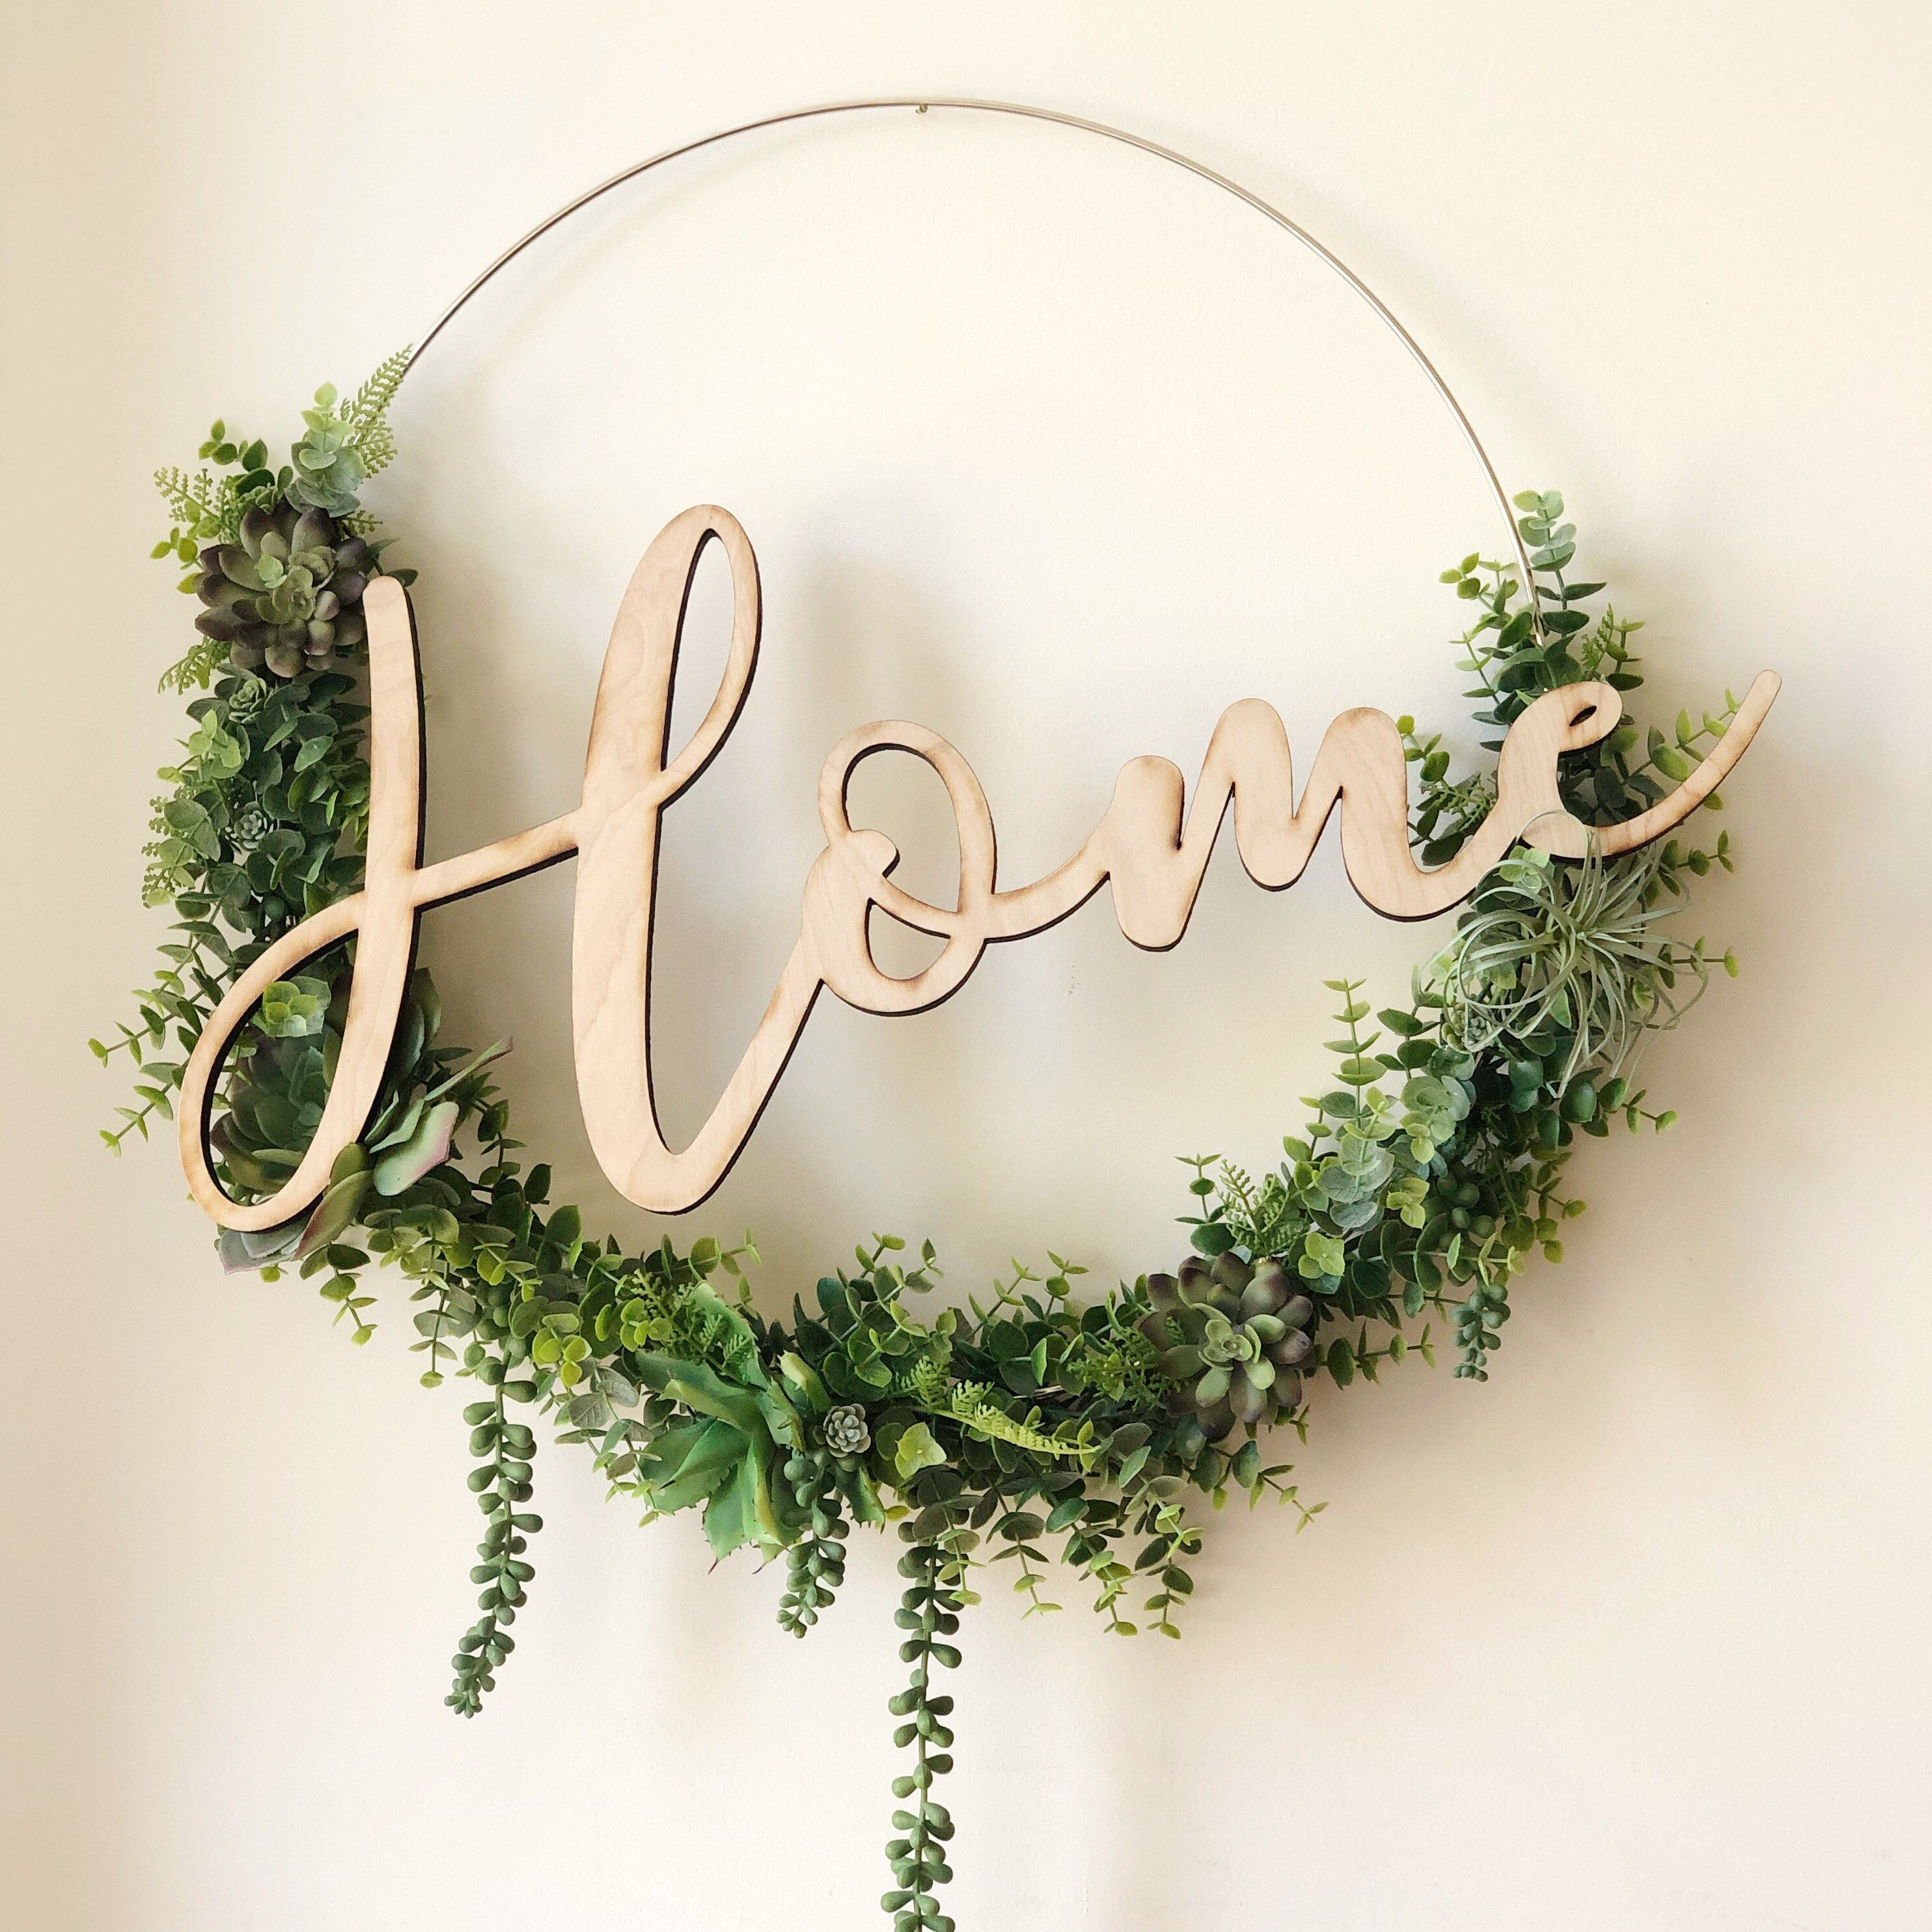 """Photo of 19 """"Succulent wreath, modern tire wreath with artificial succulents, wreath in modern style, wreath in farmhouse style, wreath for succulents at home"""